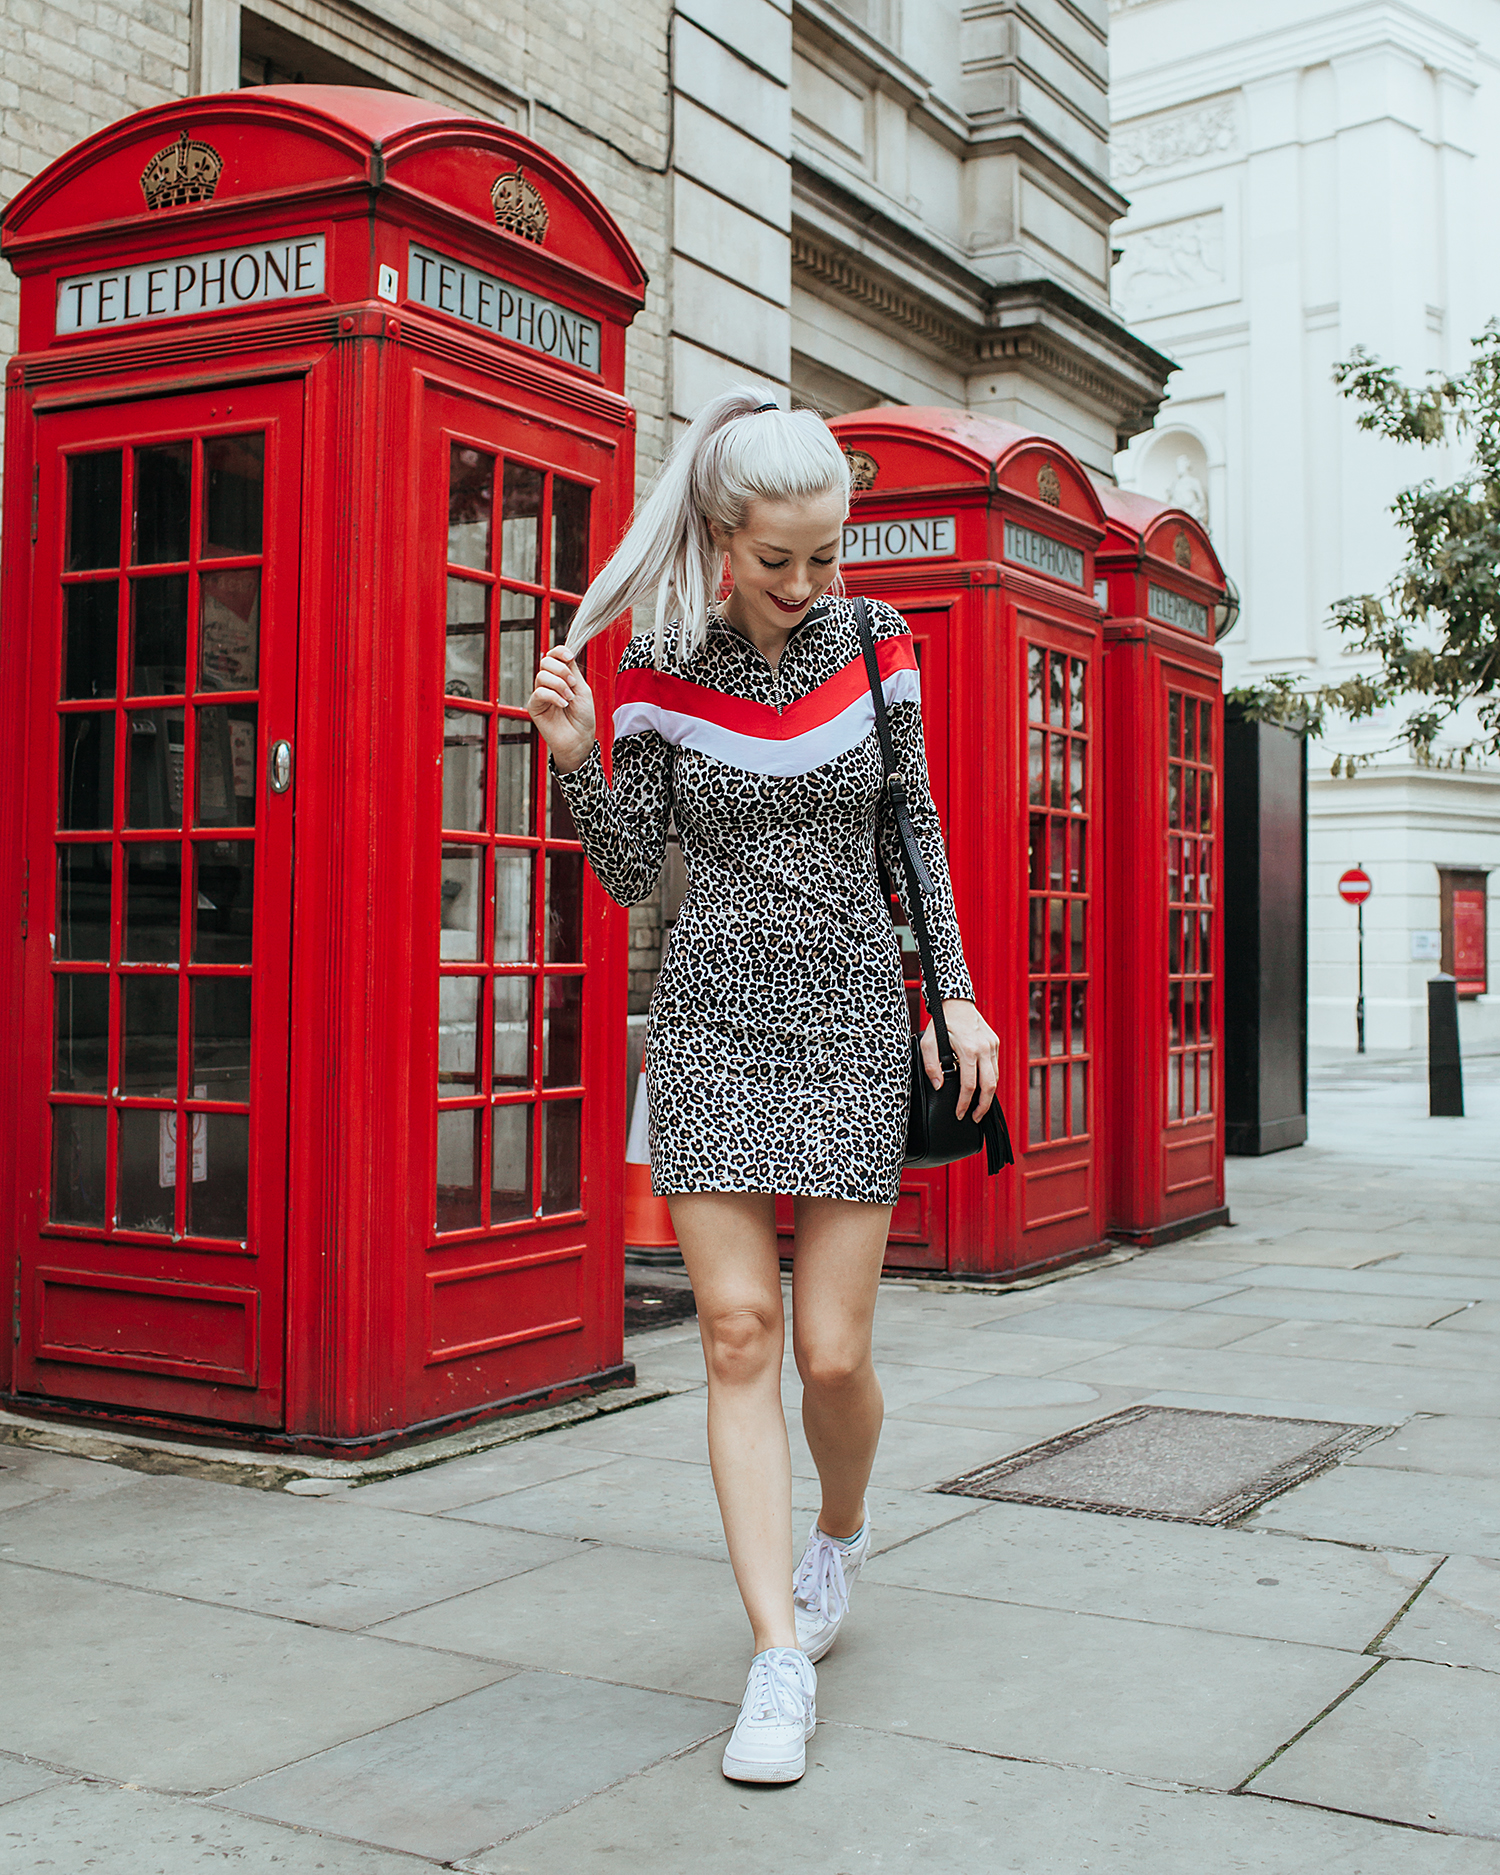 Outfit Details: Dress: Daisy London, Shoes: Nike, Bag: Gucci, Necklace: Urban Outfitters